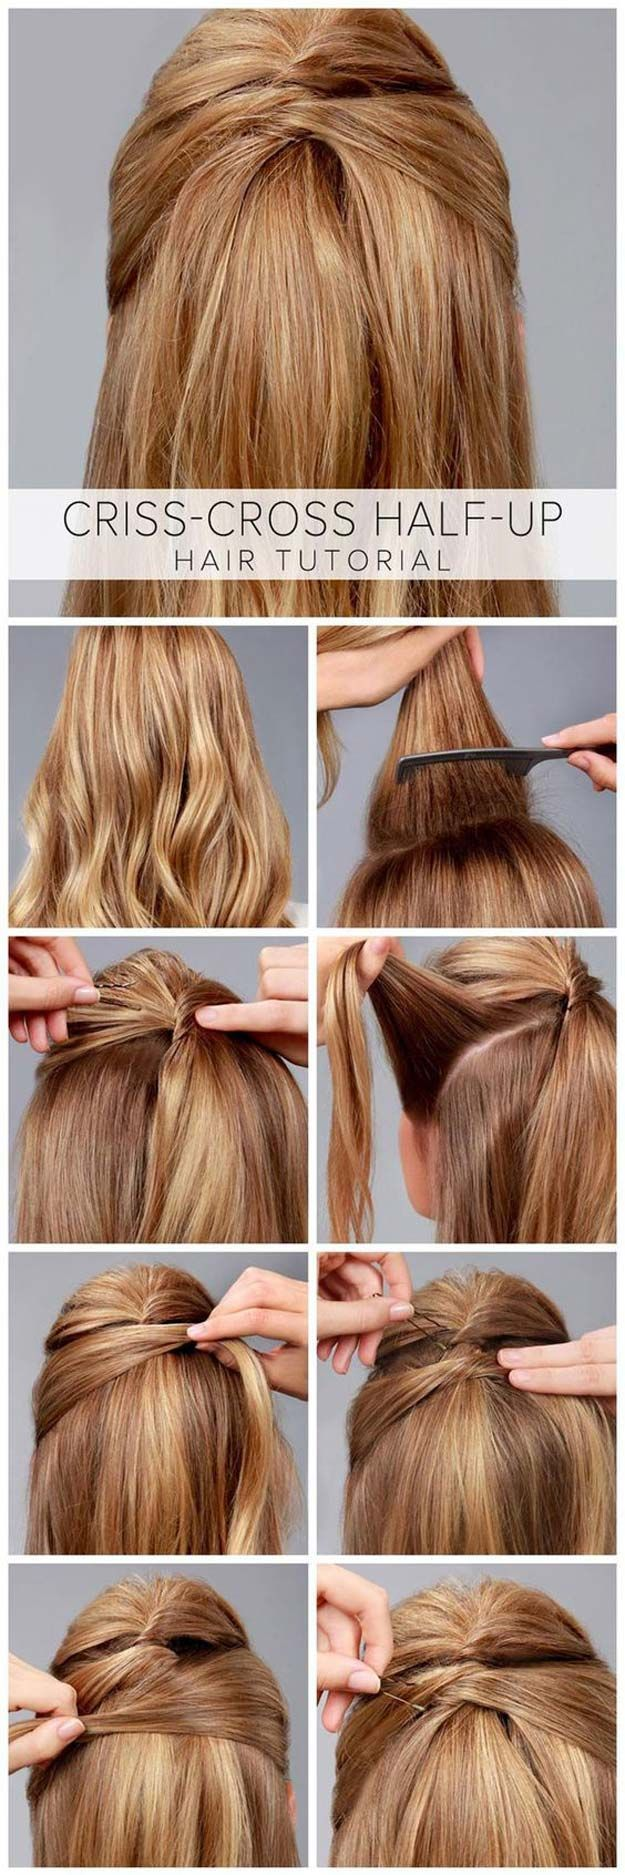 best easy hairstyles images on pinterest hair makeup